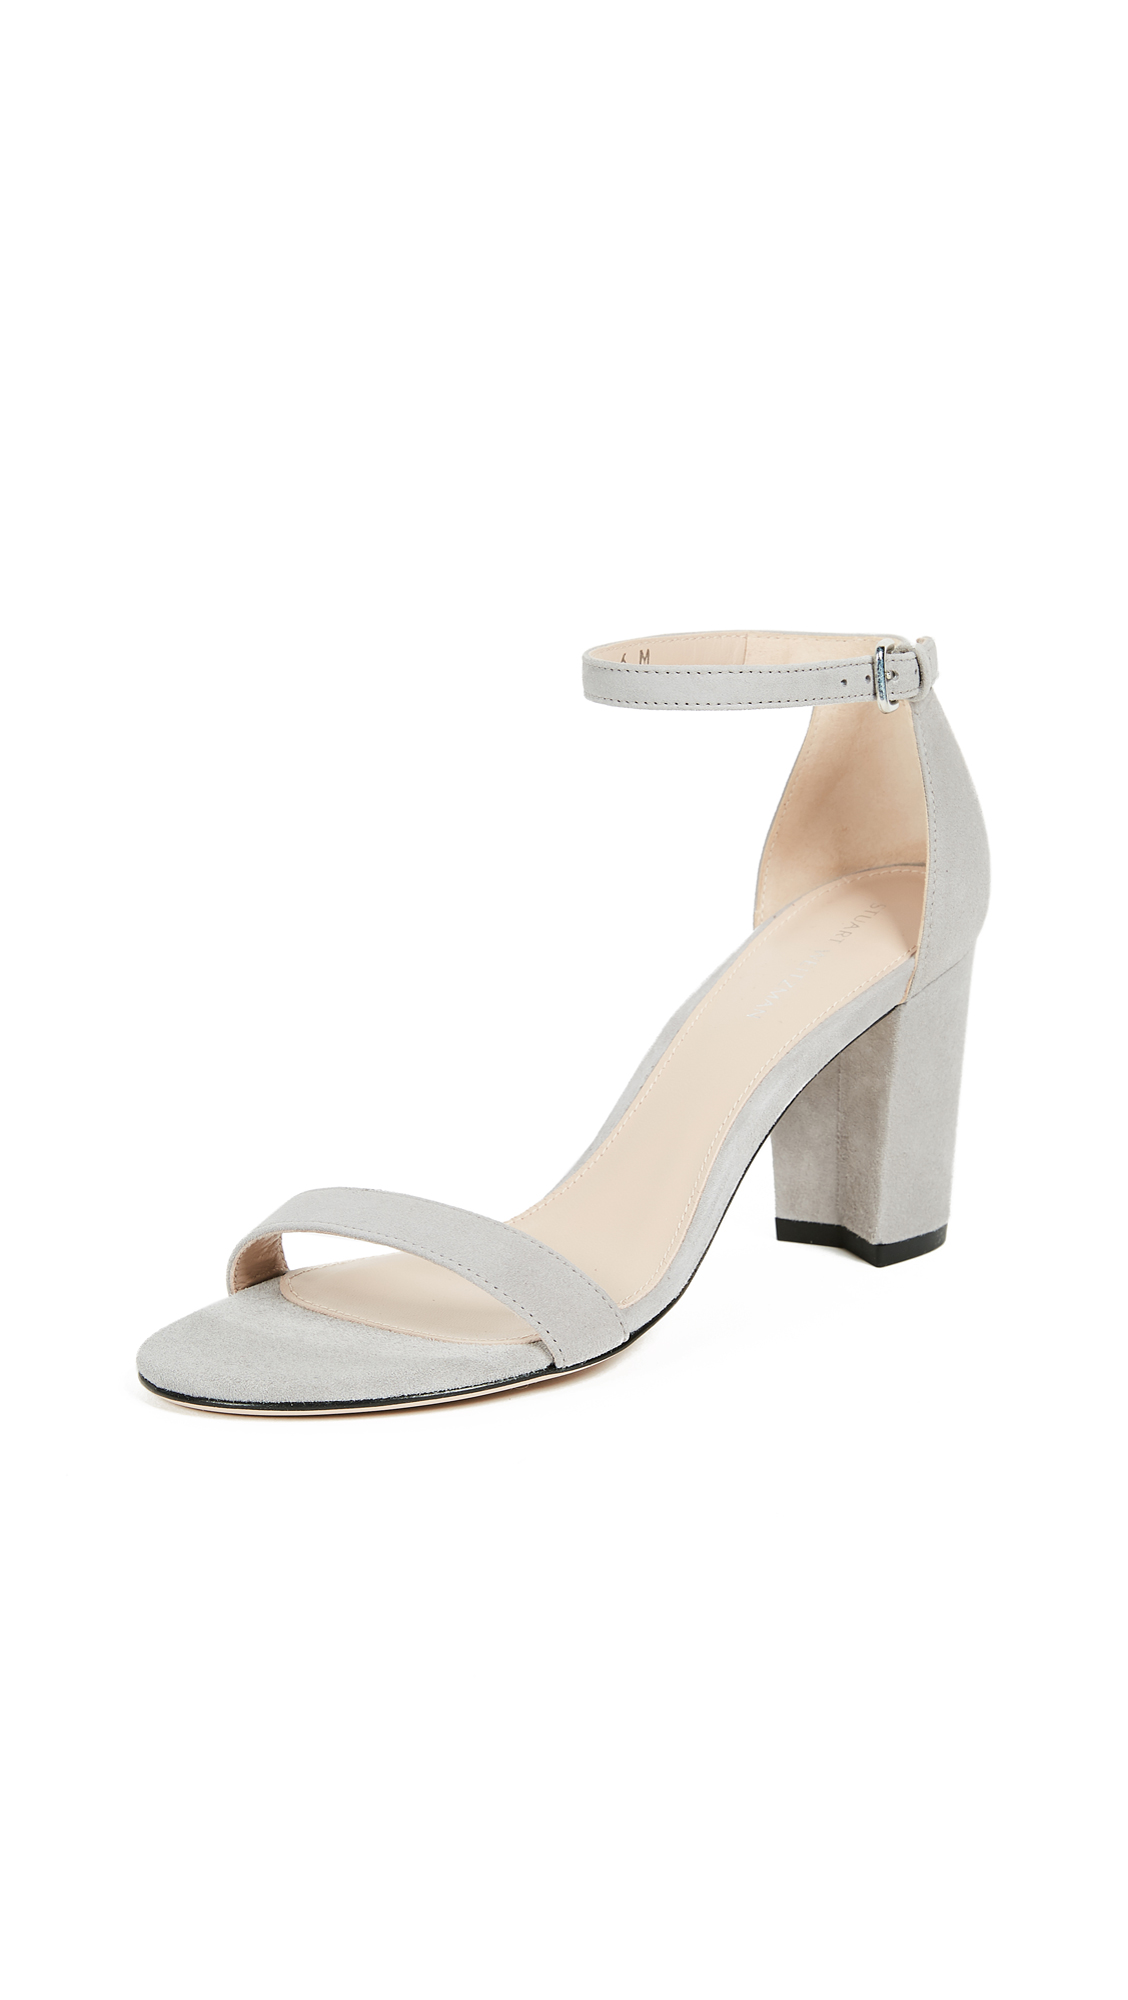 Photo of Stuart Weitzman Nearlynude Sandals online shoes sales